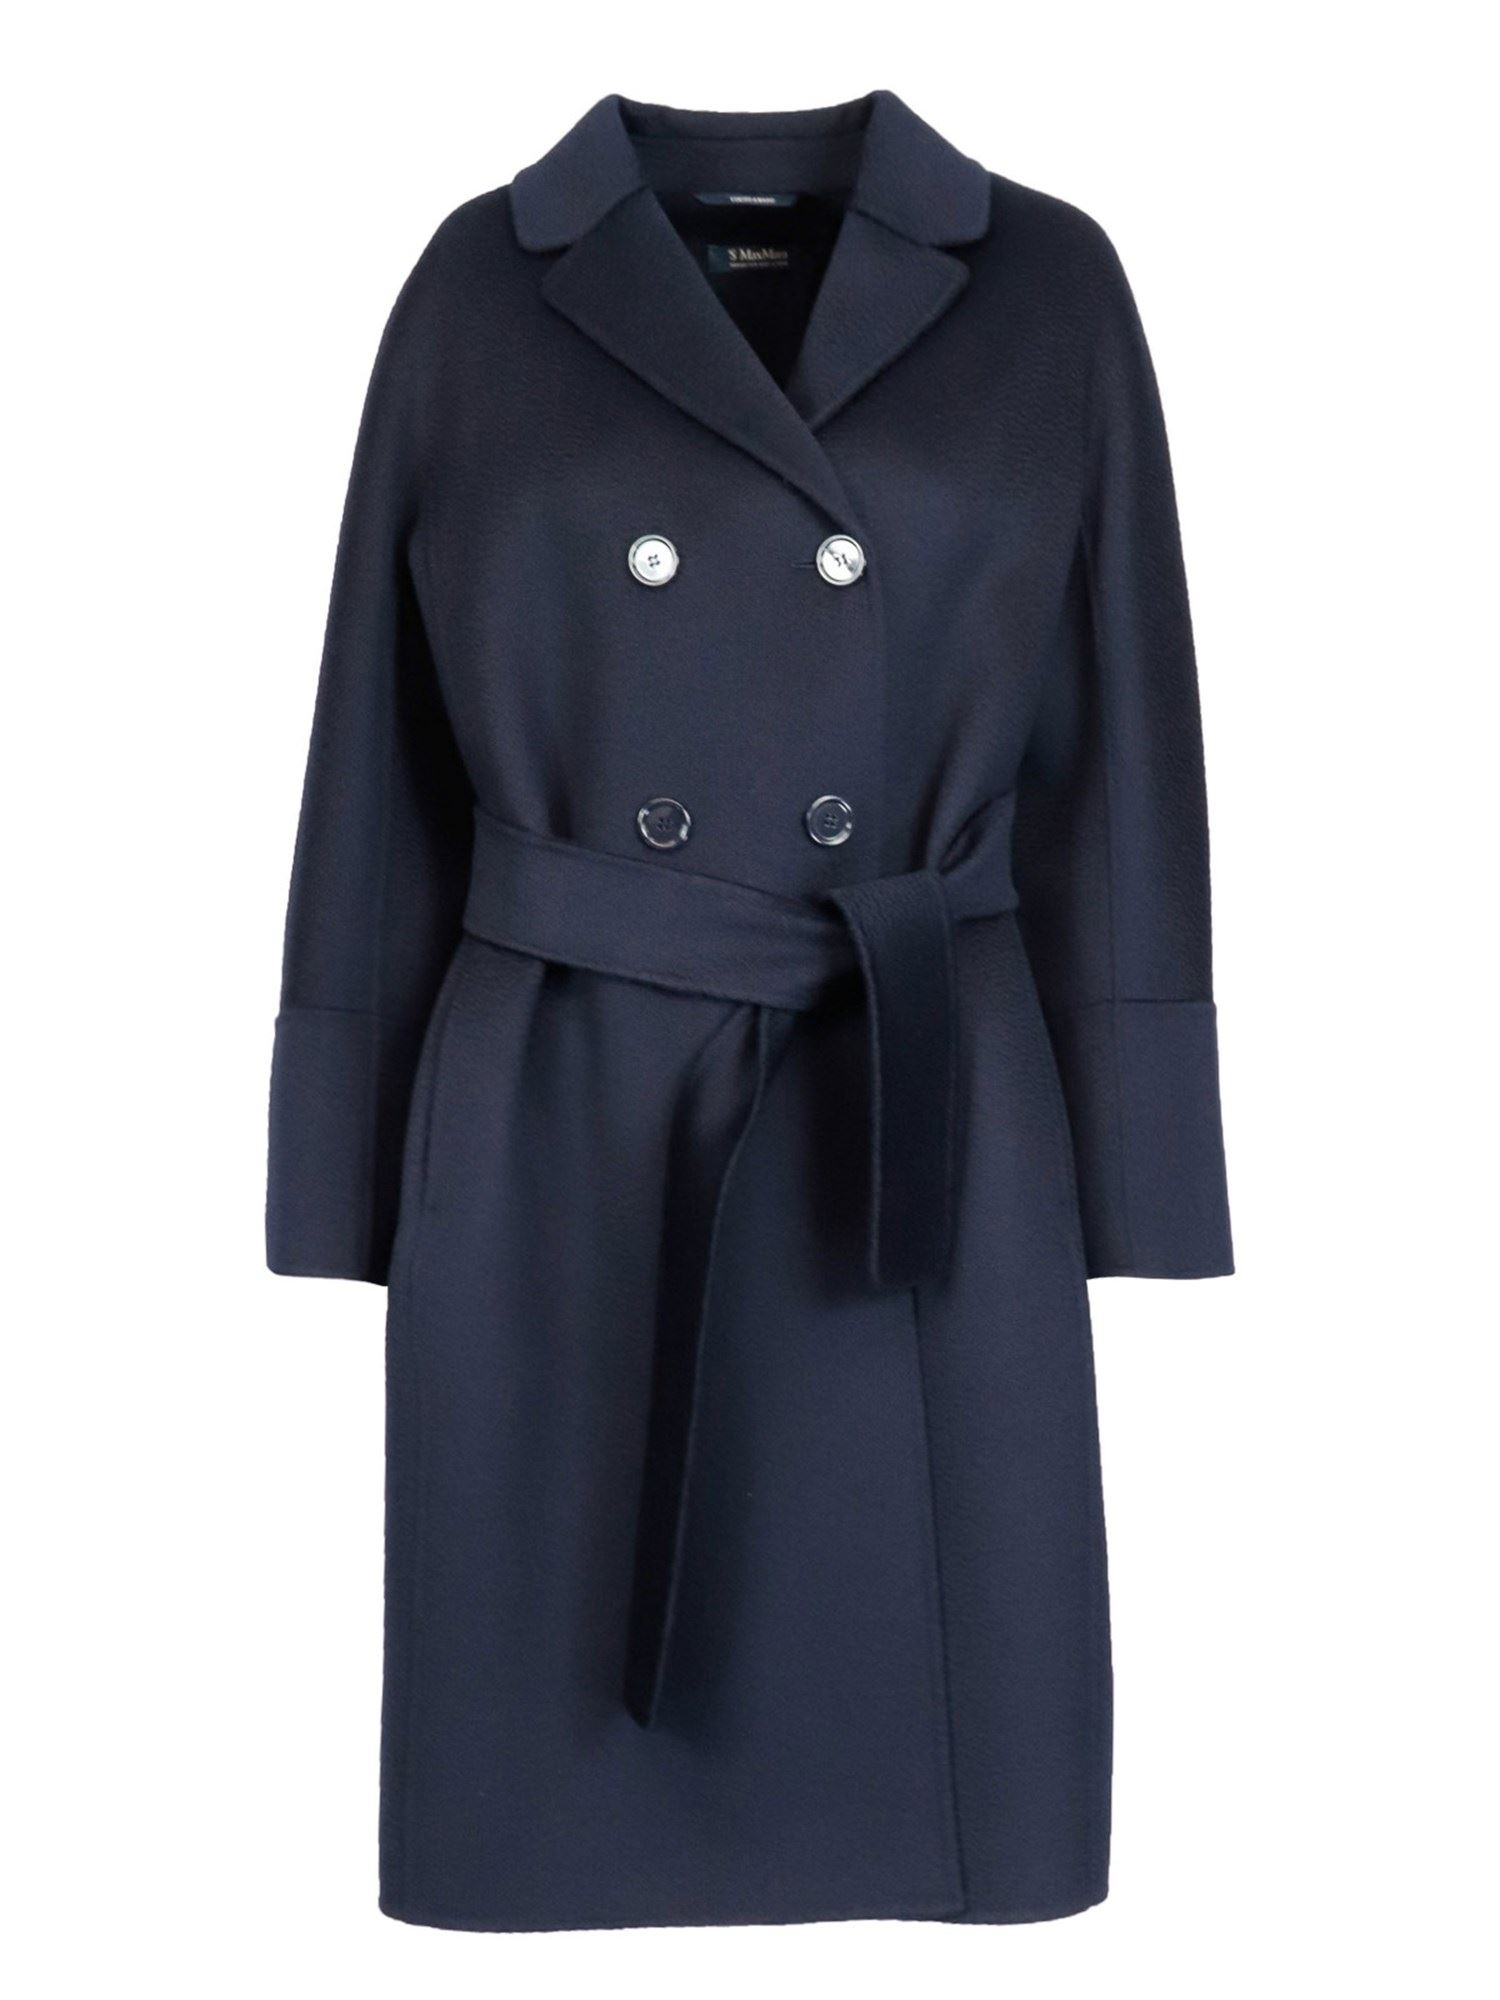 MAX MARA DOUBLE-BREASTED ARIEL COAT